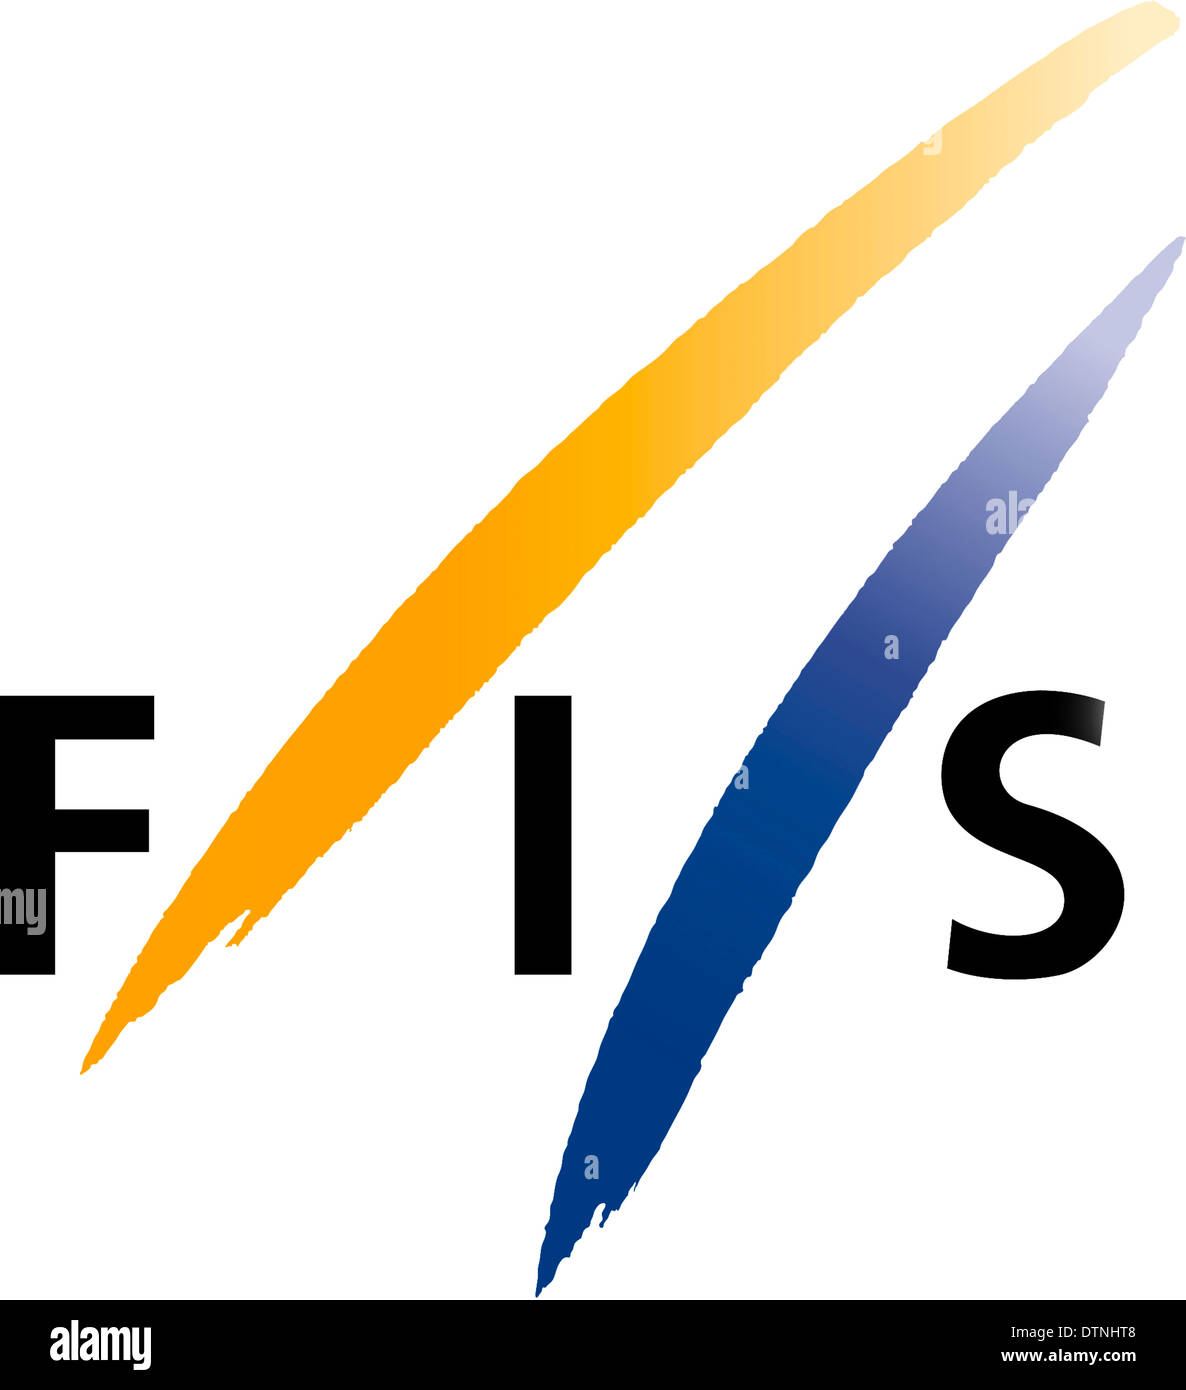 Logo of the International Ski Federation FIS - Federation Internationale de Ski with seat in Switzerland. - Stock Image